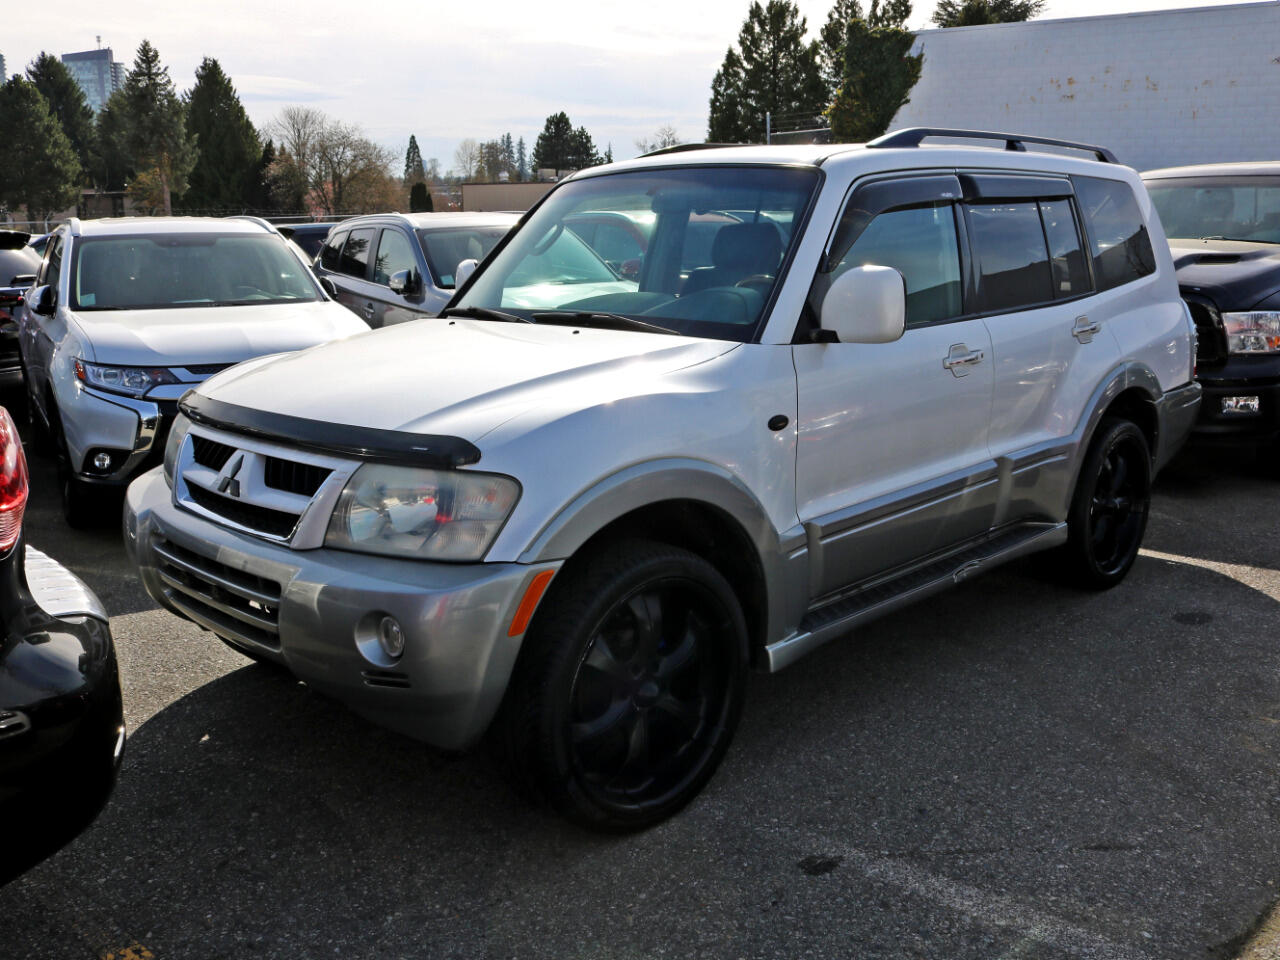 2003 Mitsubishi Montero 4WD In House Loans Available Apply Online at Surre